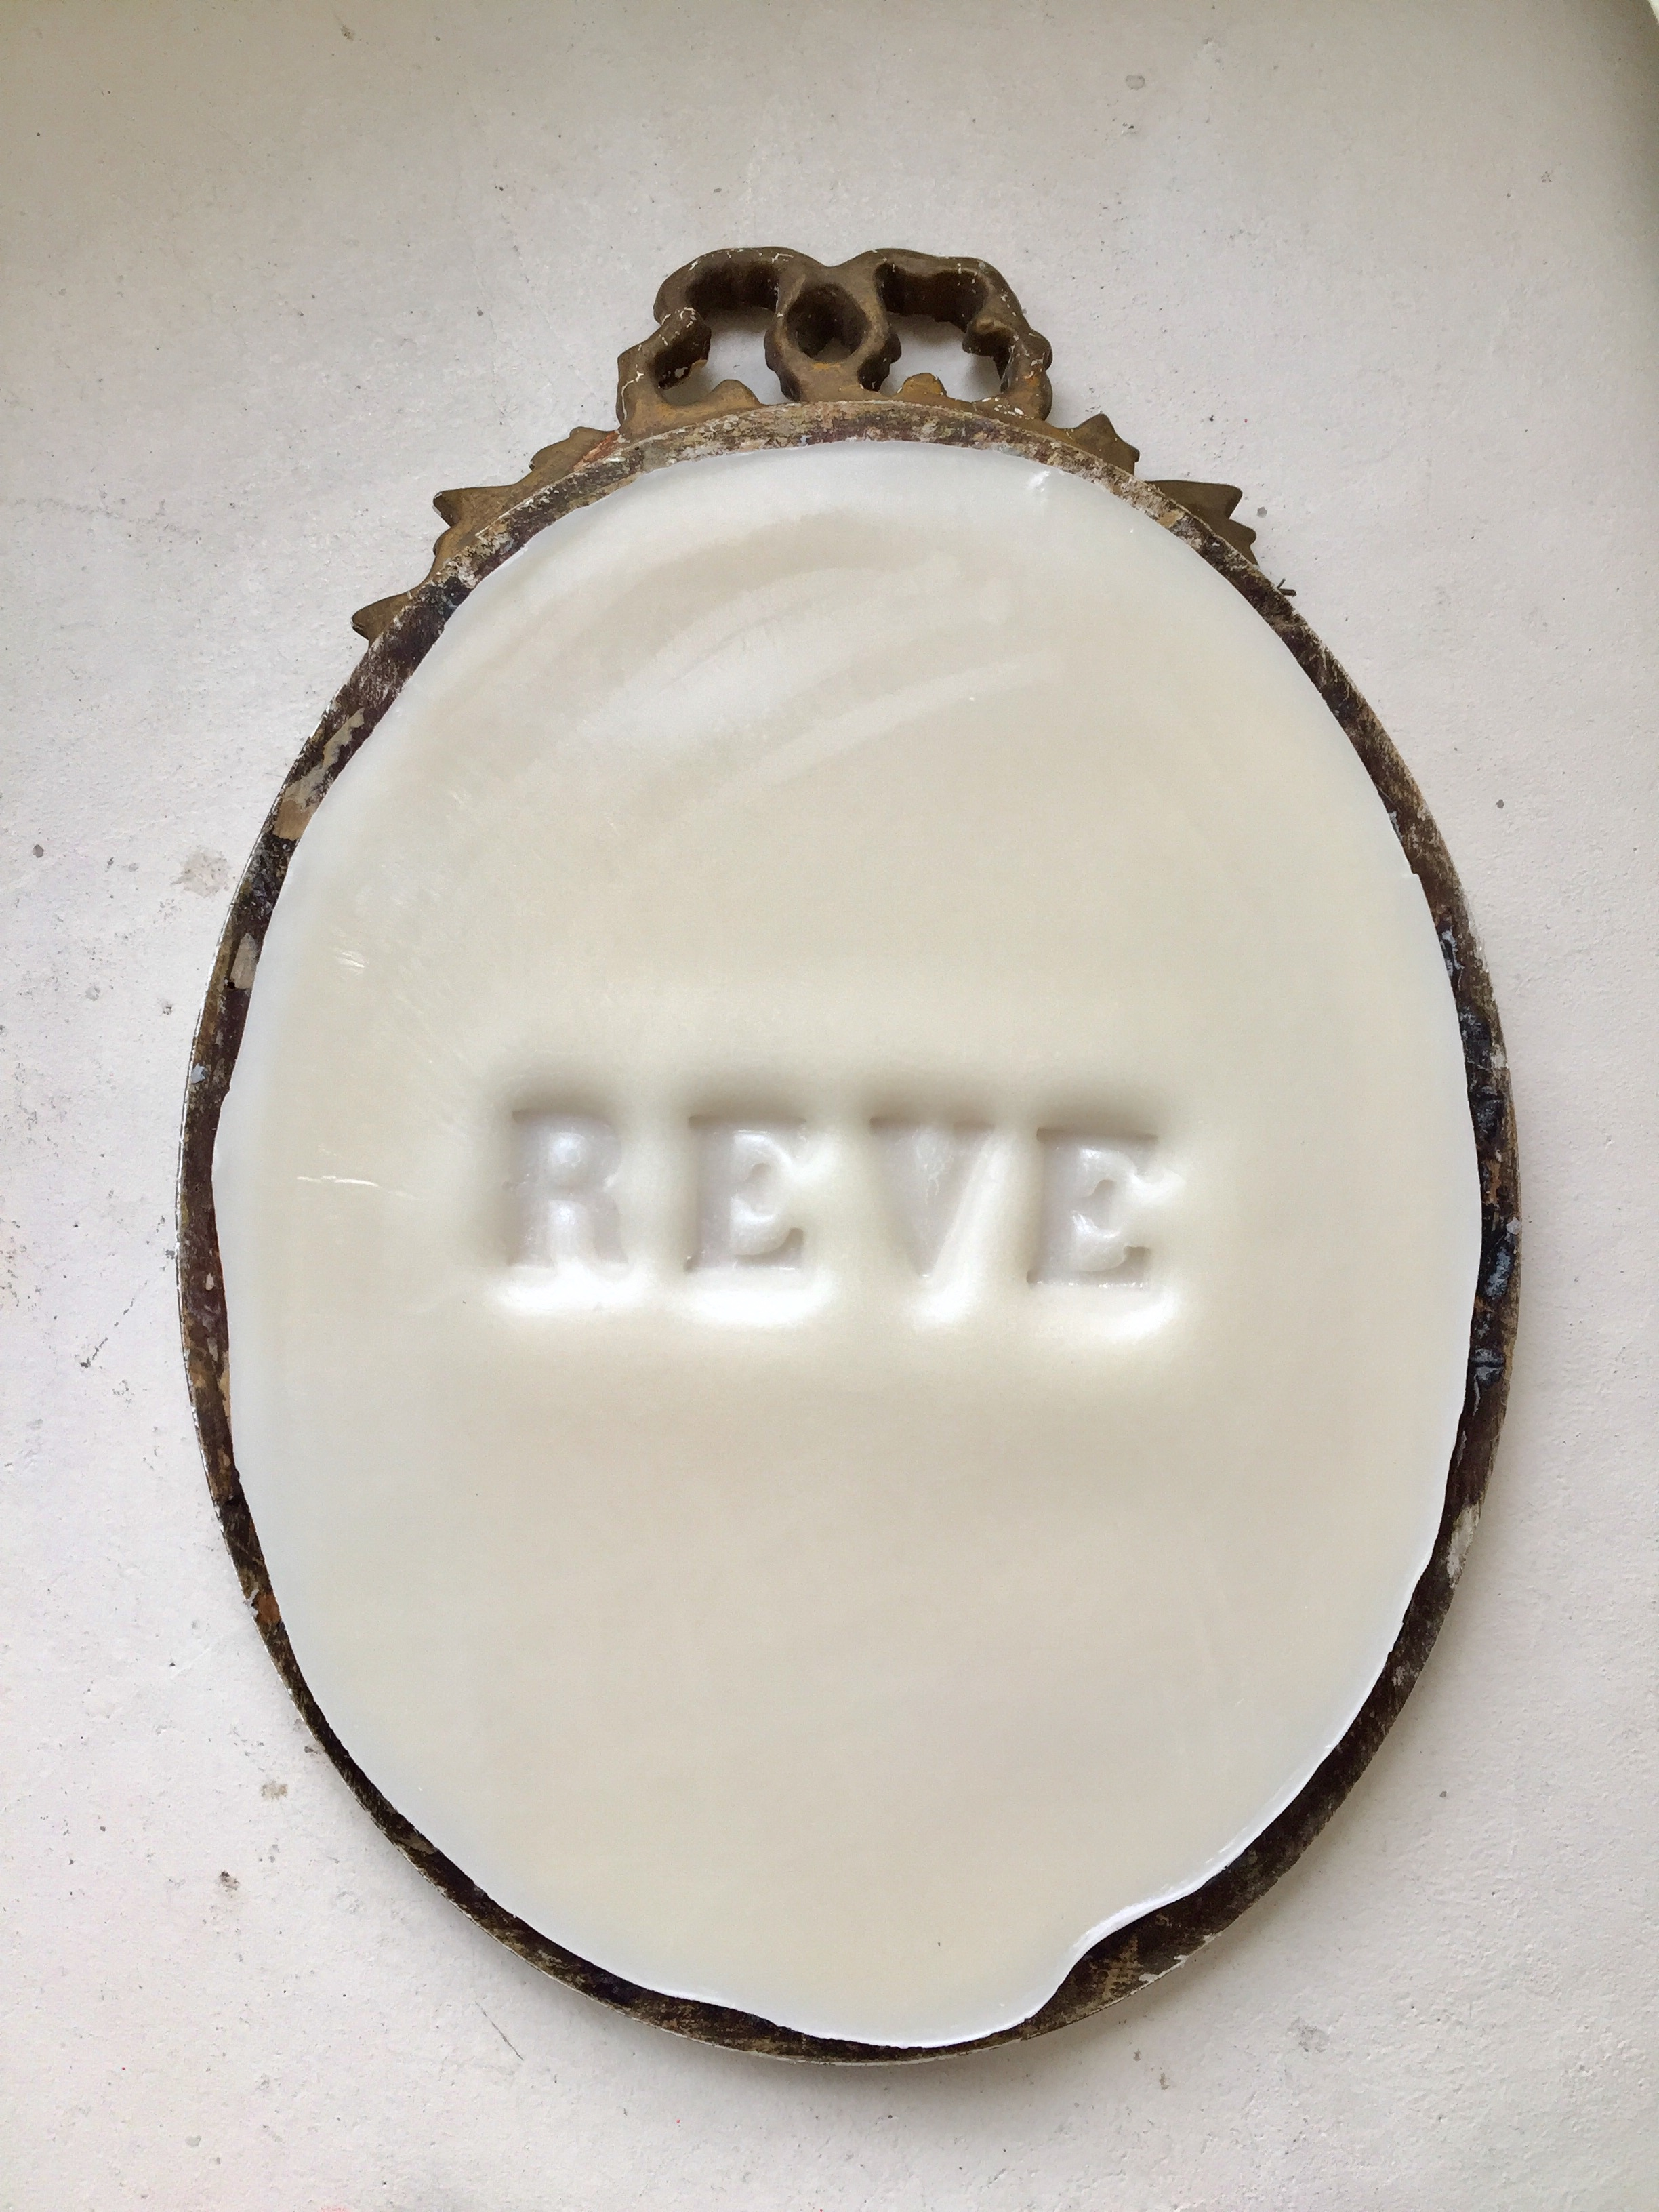 RÊVE, 2018, wax and ancient frame